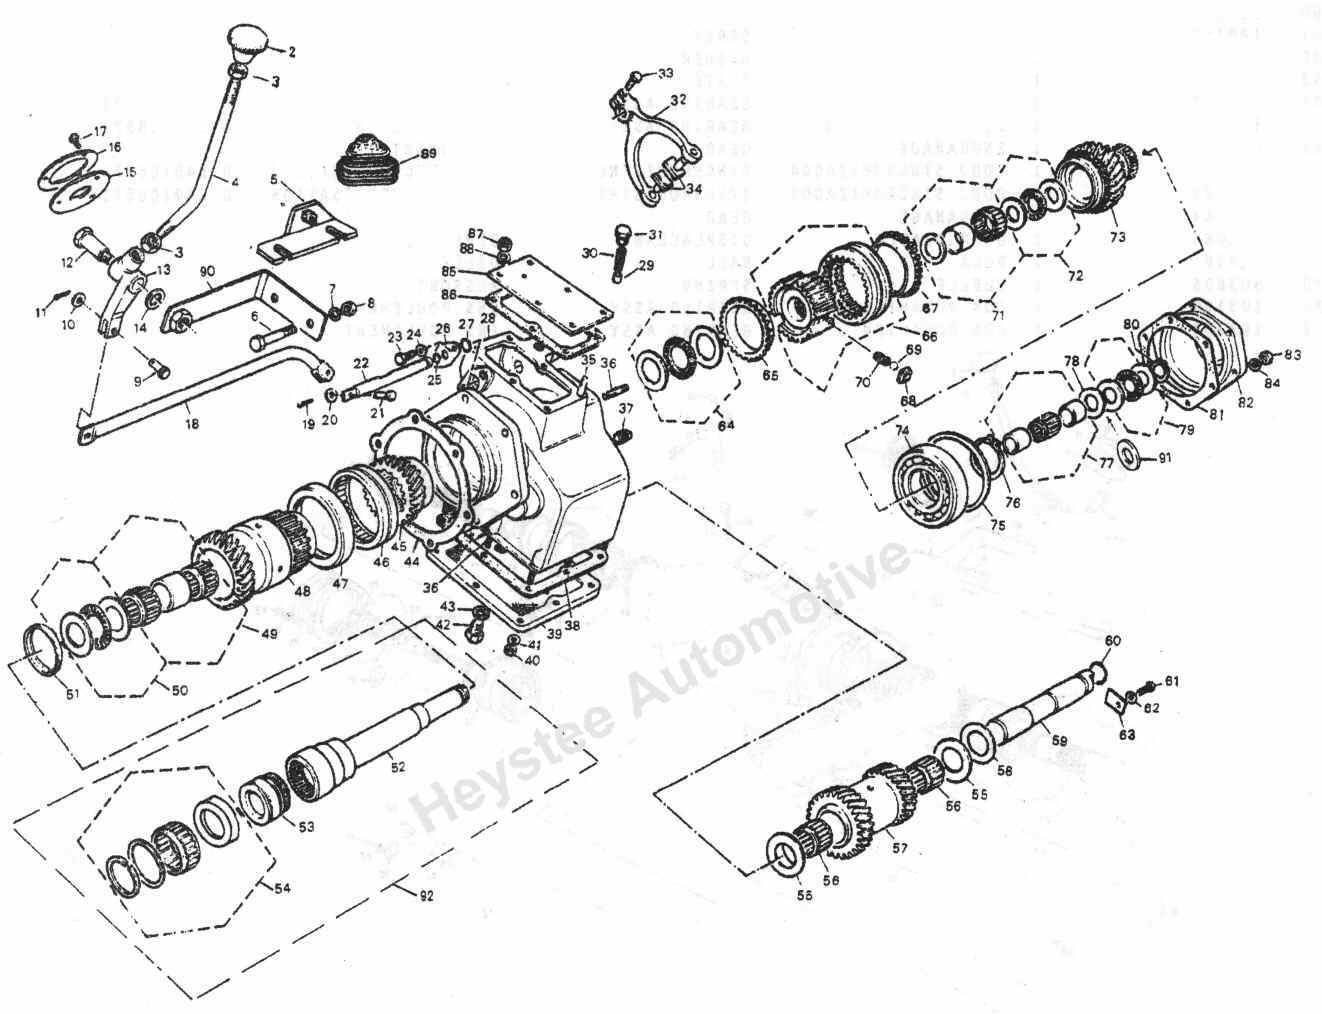 land rover freelander parts diagram 2 way dimmer switch wiring audi a6 diagrams online free imageresizertool com